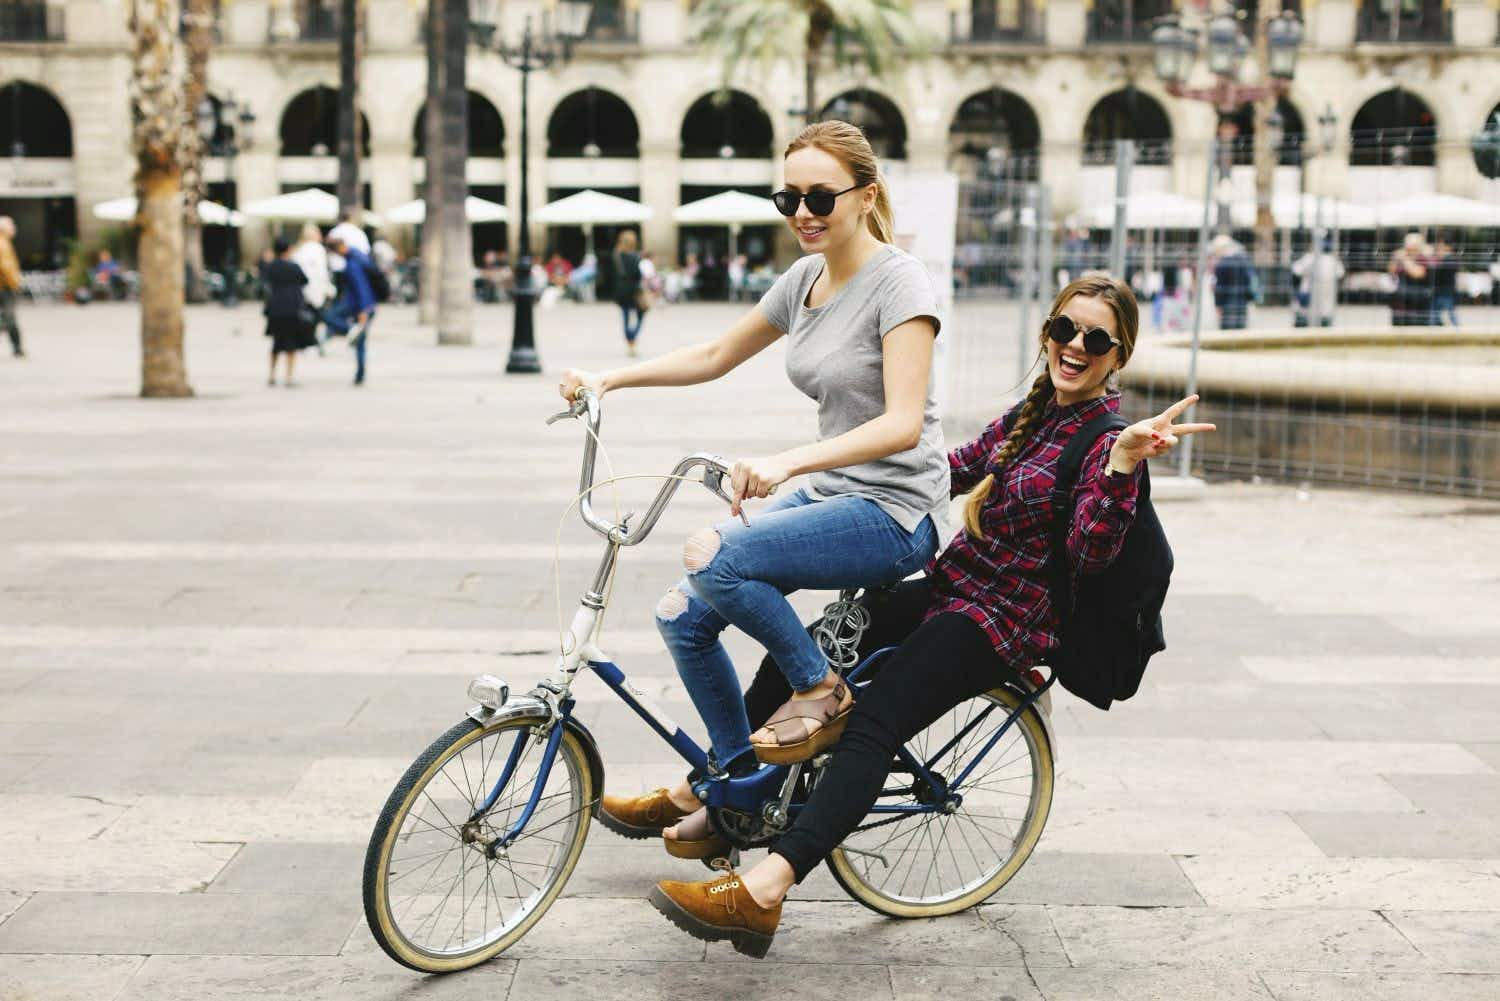 Millennials are prioritising travel over getting on the housing ladder